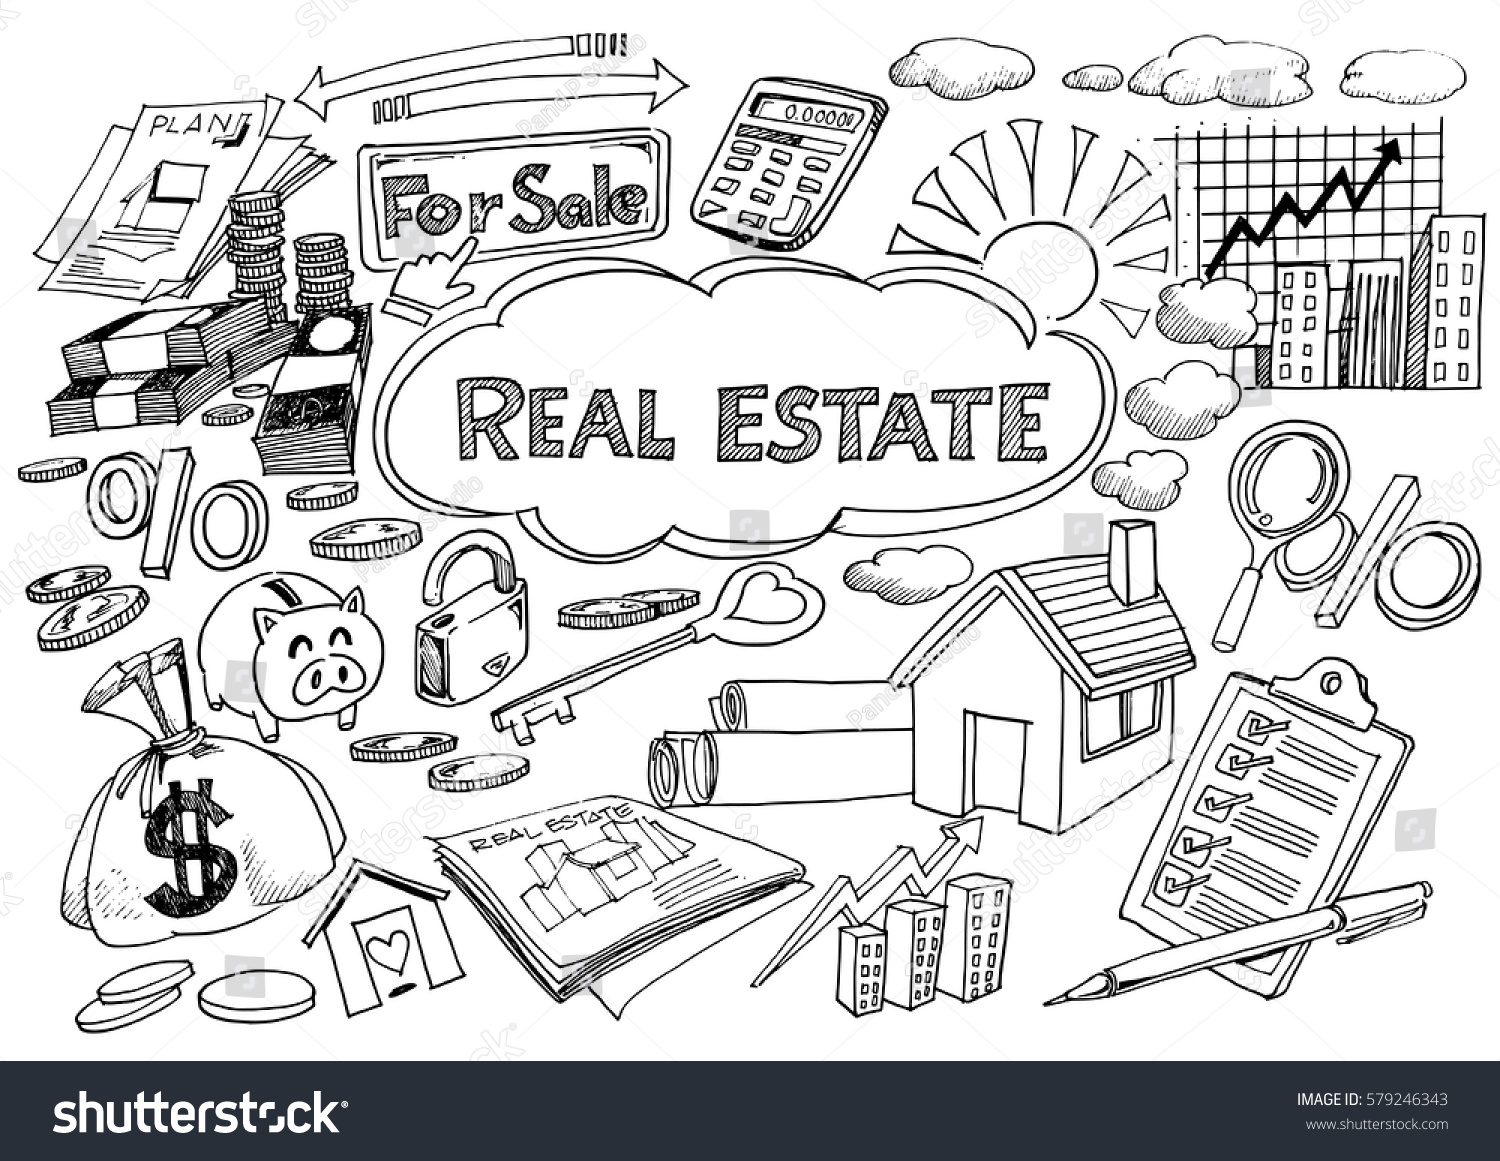 Coloring book real estate - Real Estate Business Industry And Investment Chalk Handwriting Doodle Sign And Symbol Freehand Doodle Icons